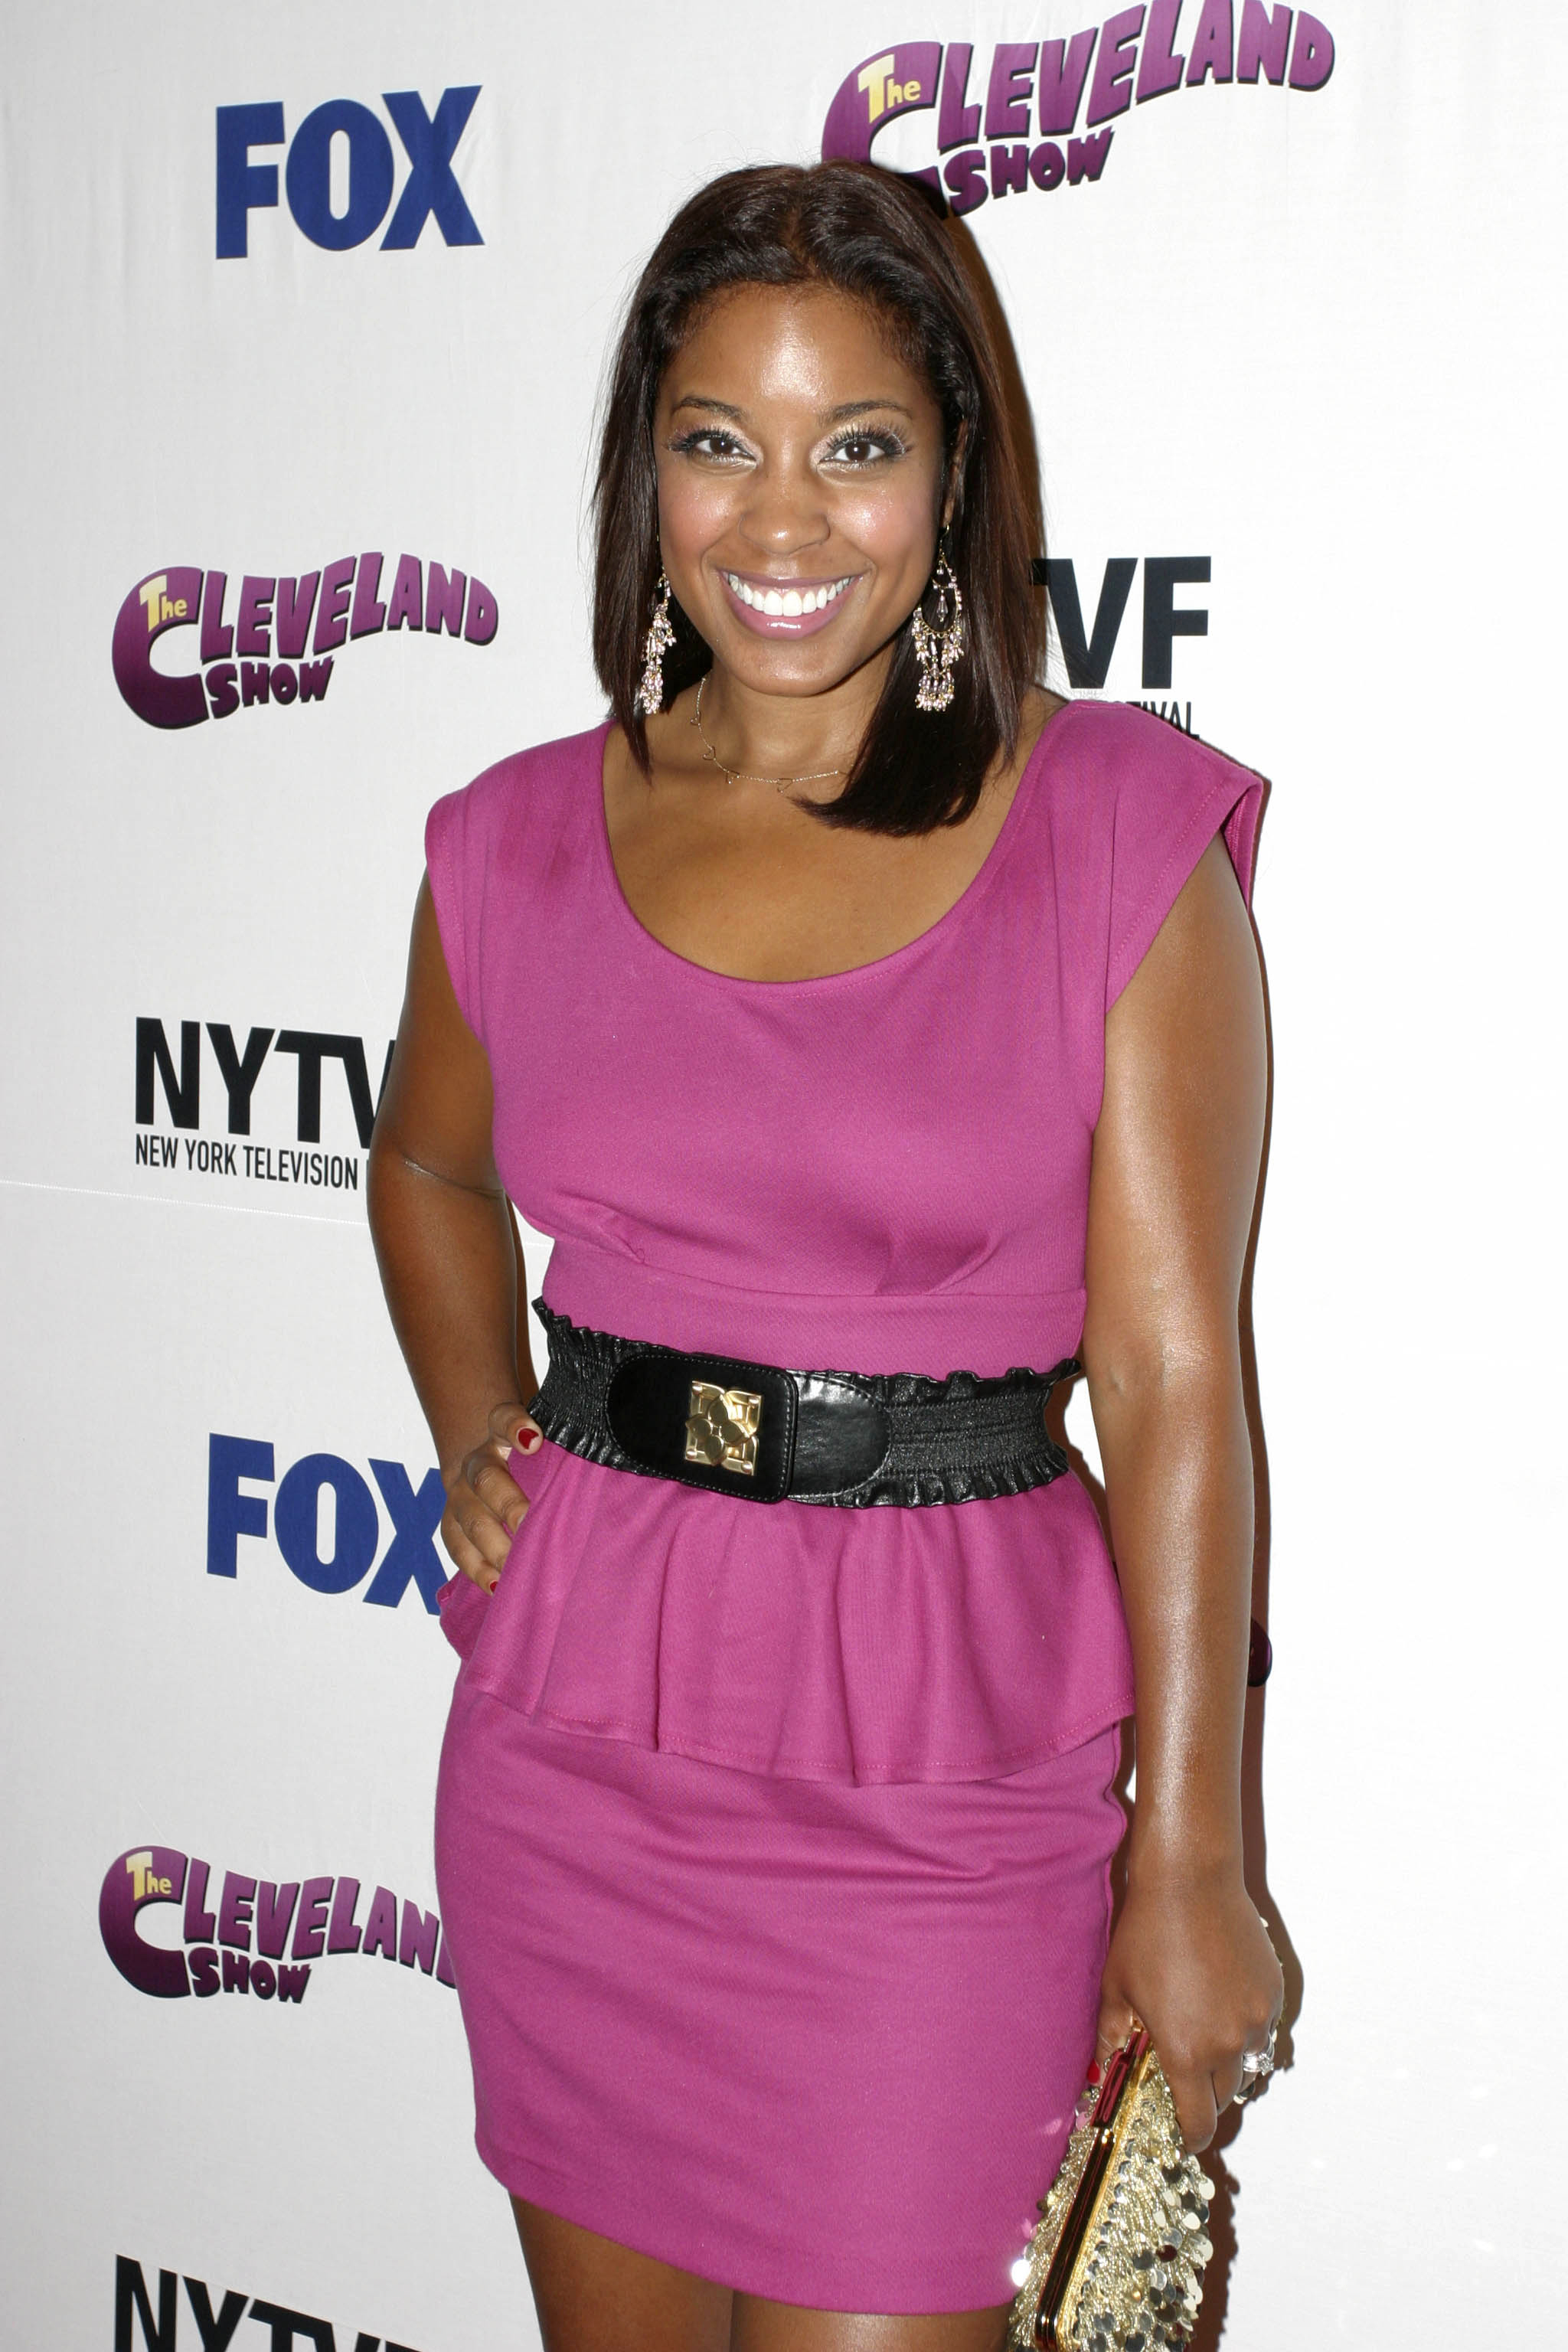 http://upload.wikimedia.org/wikipedia/commons/3/30/Reagan_Gomez-Preston_at_NYTVF.jpg